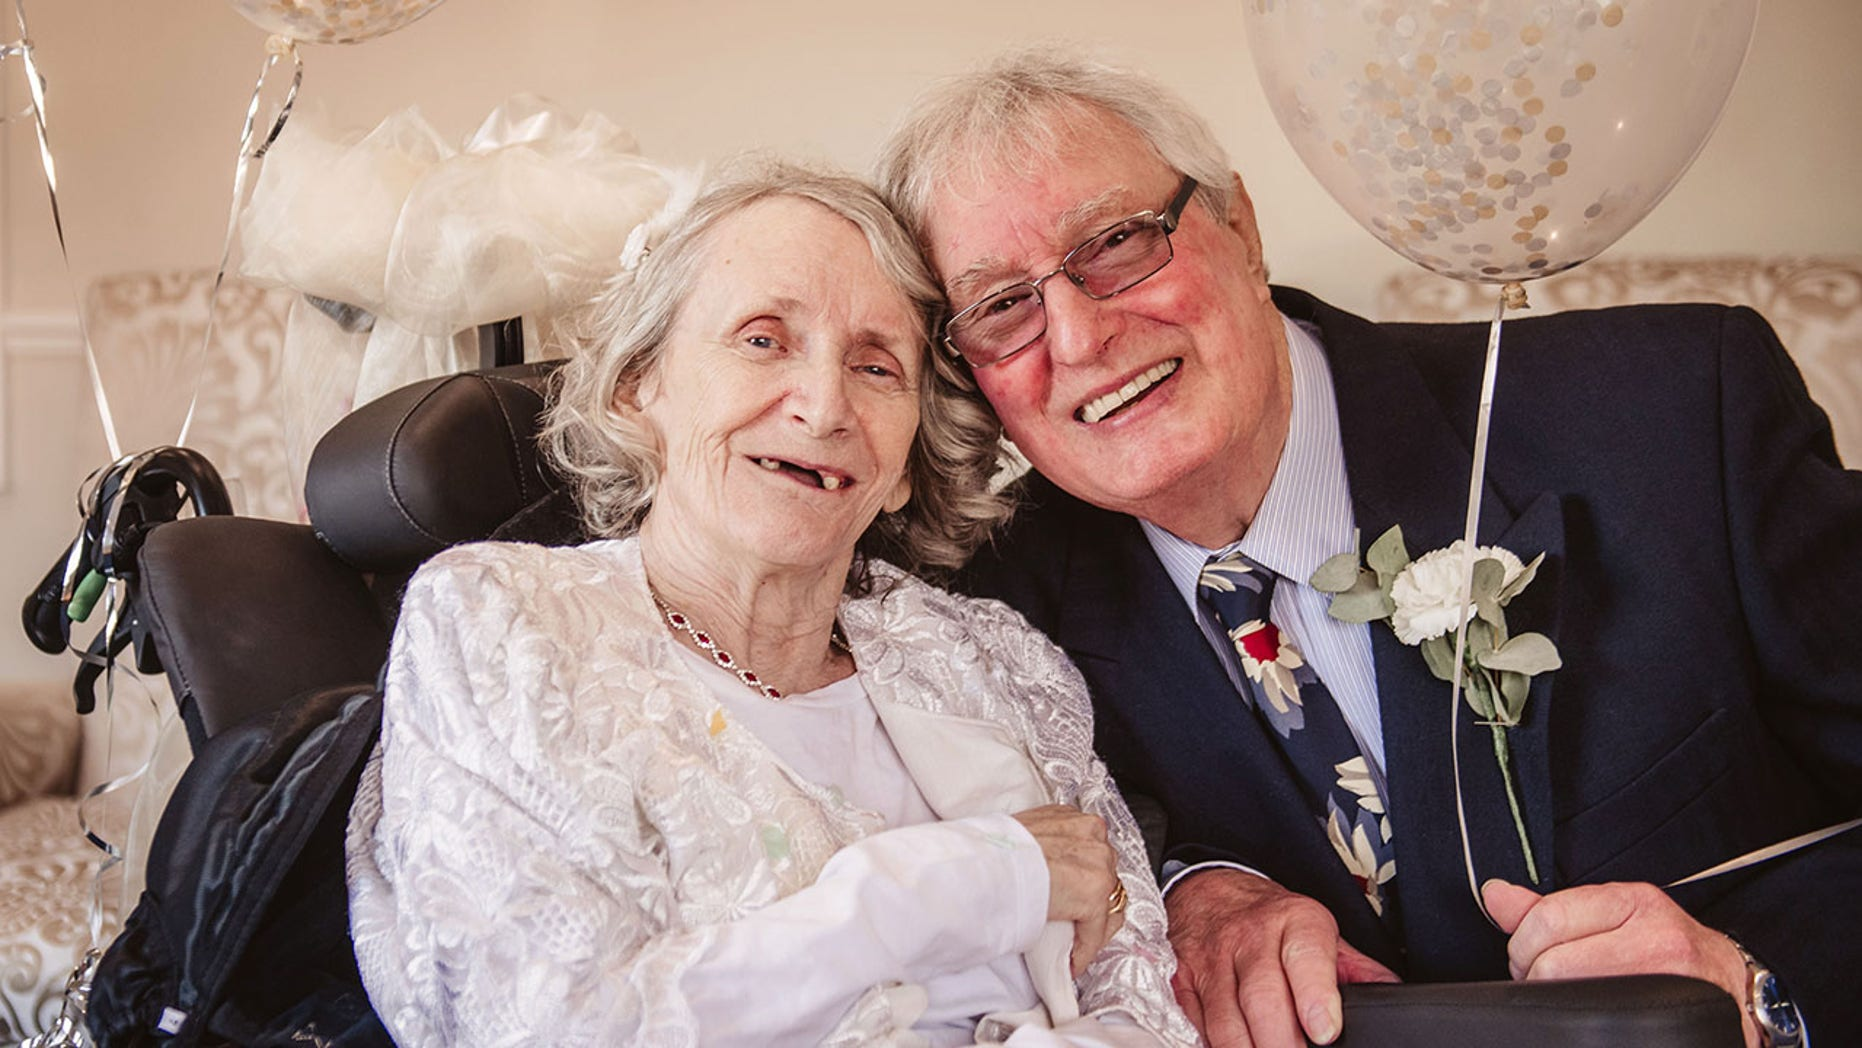 Love wins! A longtime couple in the U.K. are now symbolically husband and wife, after the septuagenarians tied the knot in an informal wedding blessing ceremony on Valentine's Day.